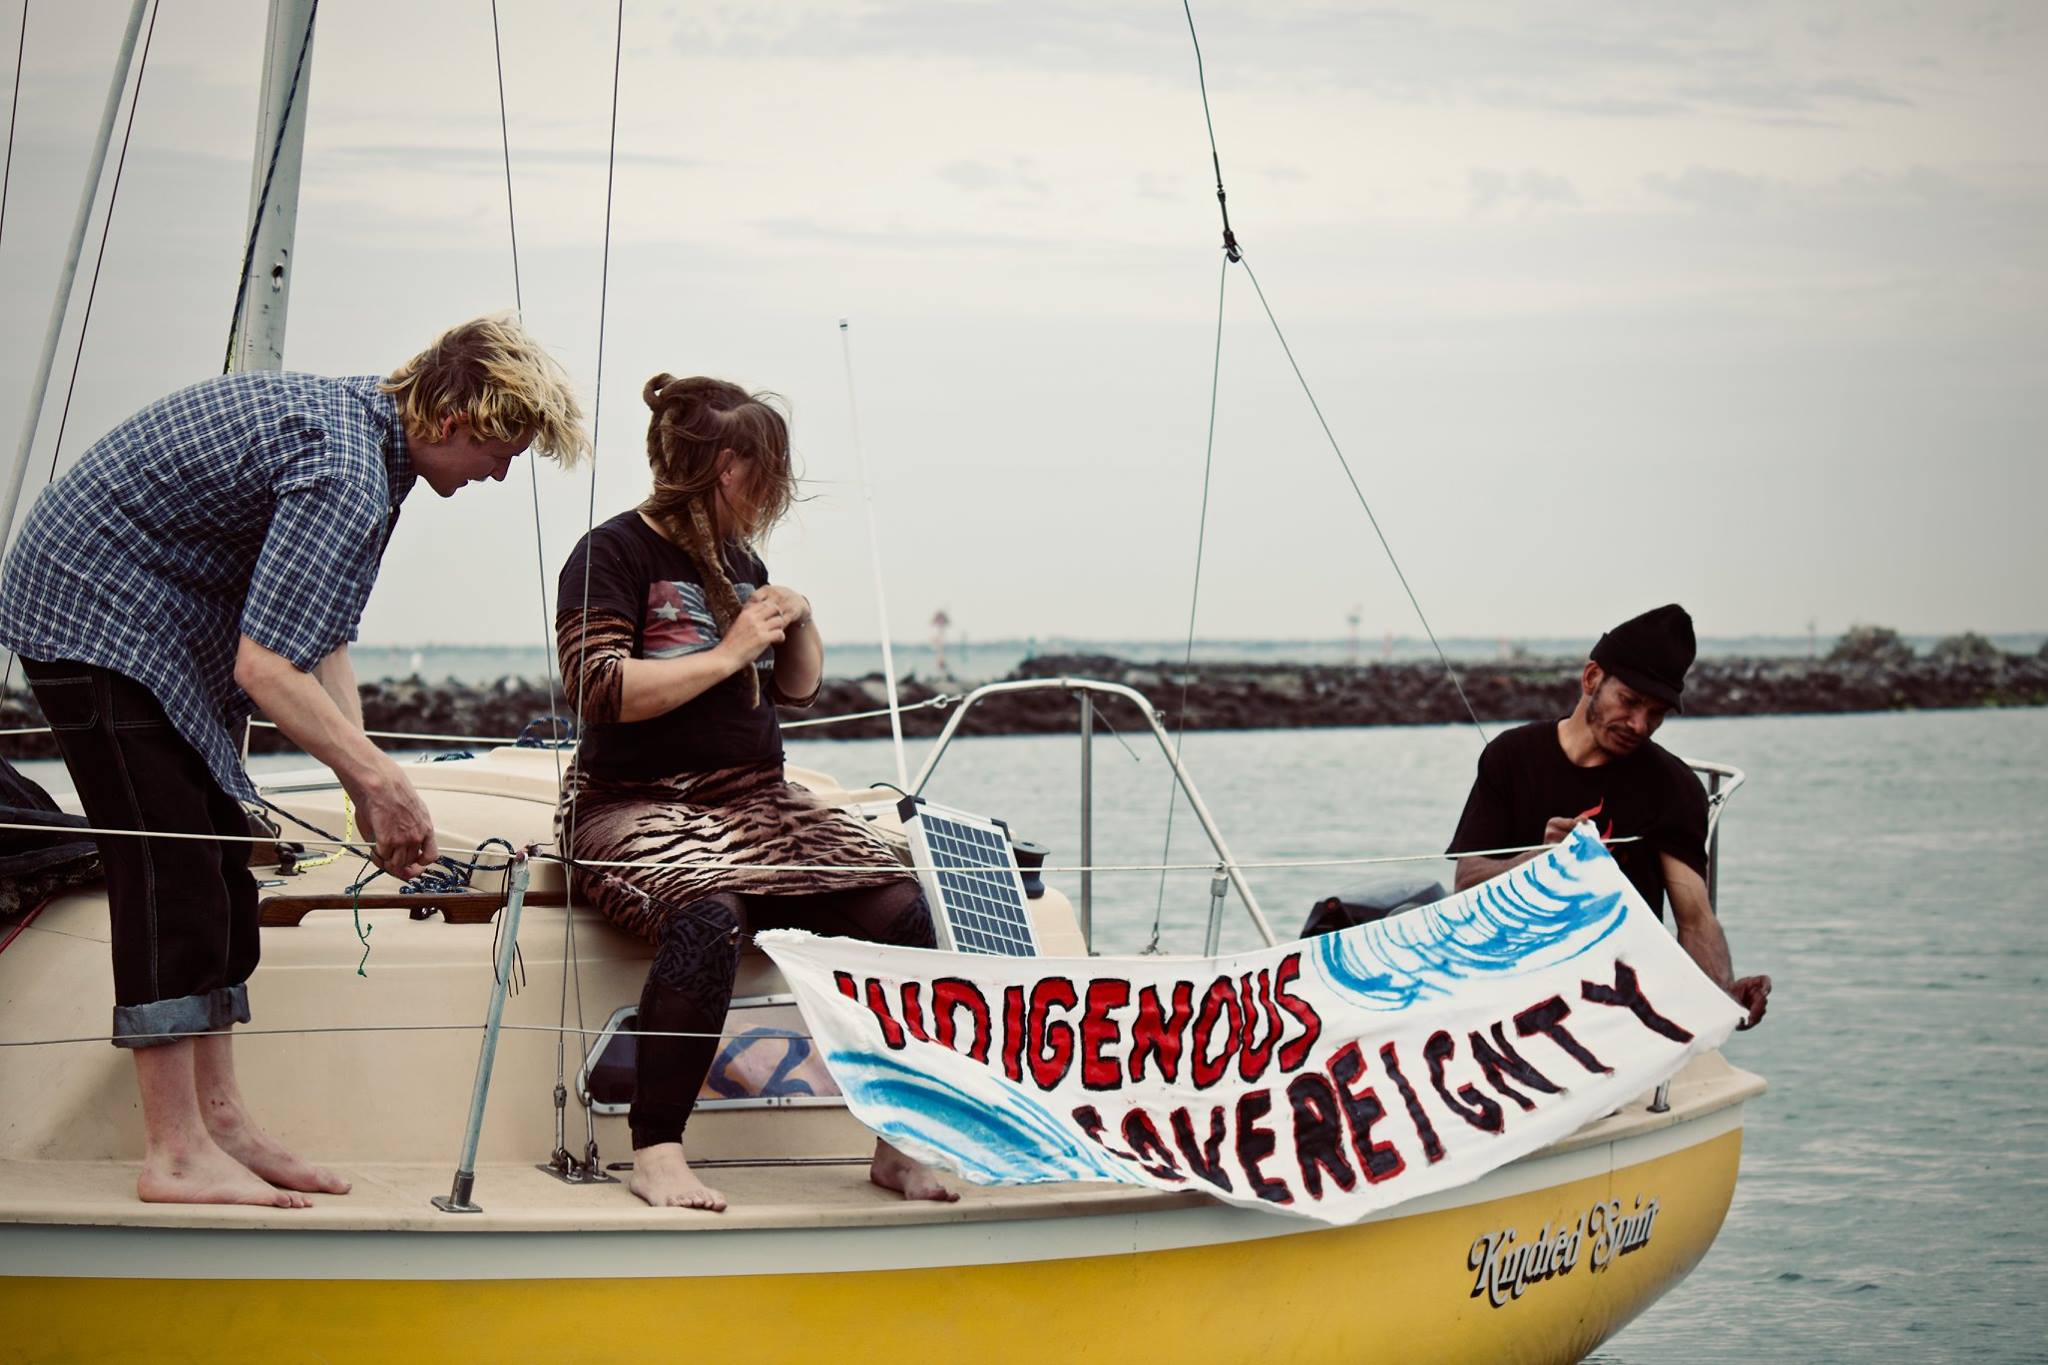 Two people sit on a yellow fibreglass boat. Another person stands bent over while fastening a banner to the boat railing. The banner reads 'Indigenous Sovereignty'.